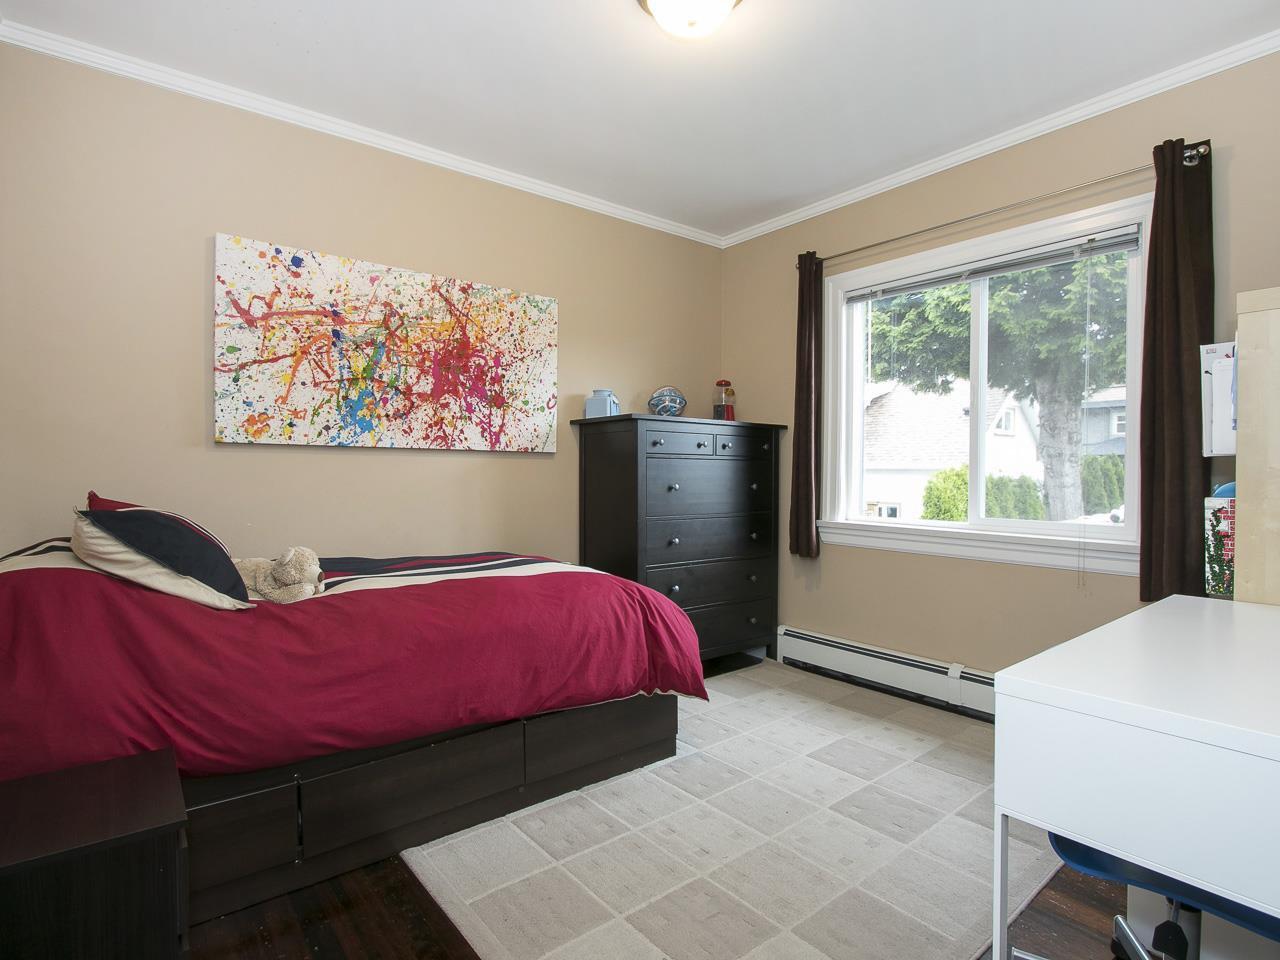 Photo 15: Photos: 731 W KING EDWARD AVENUE in Vancouver: Cambie House for sale (Vancouver West)  : MLS®# R2204992